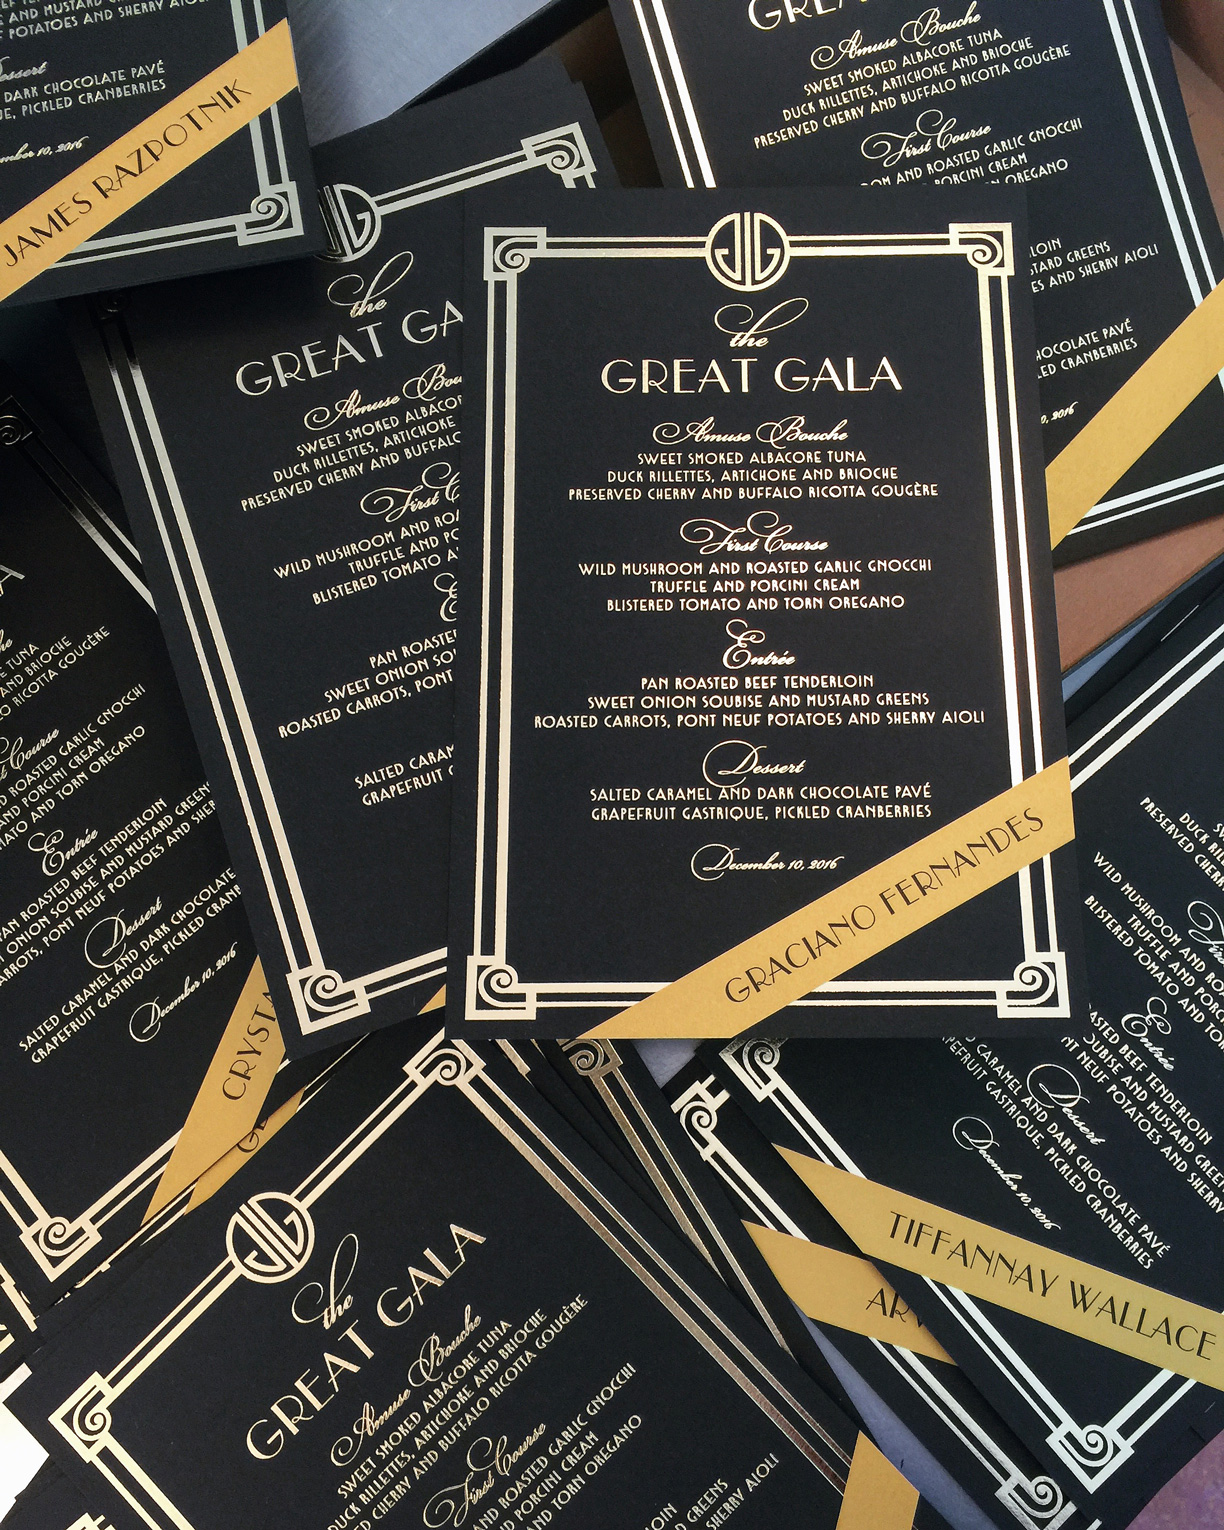 The Great Gala  \\ Loving these oversized menus we created for last night's Gatsby-themed holiday party. Digging the method we used to personalize each one.